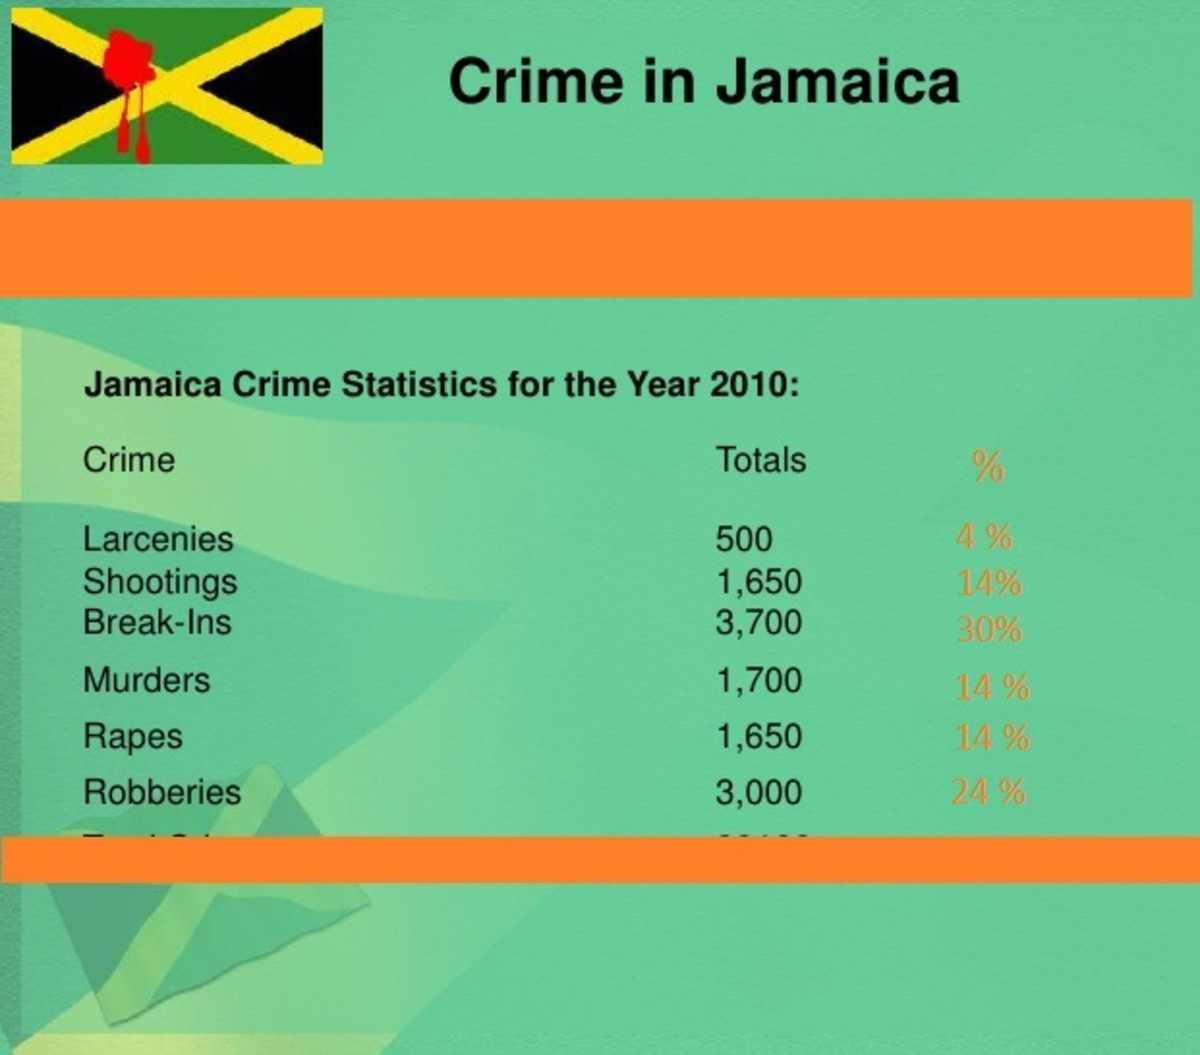 As you can see, most crime in Jamaica is related to larceny and break-ins that eventually lead to larceny and theft.